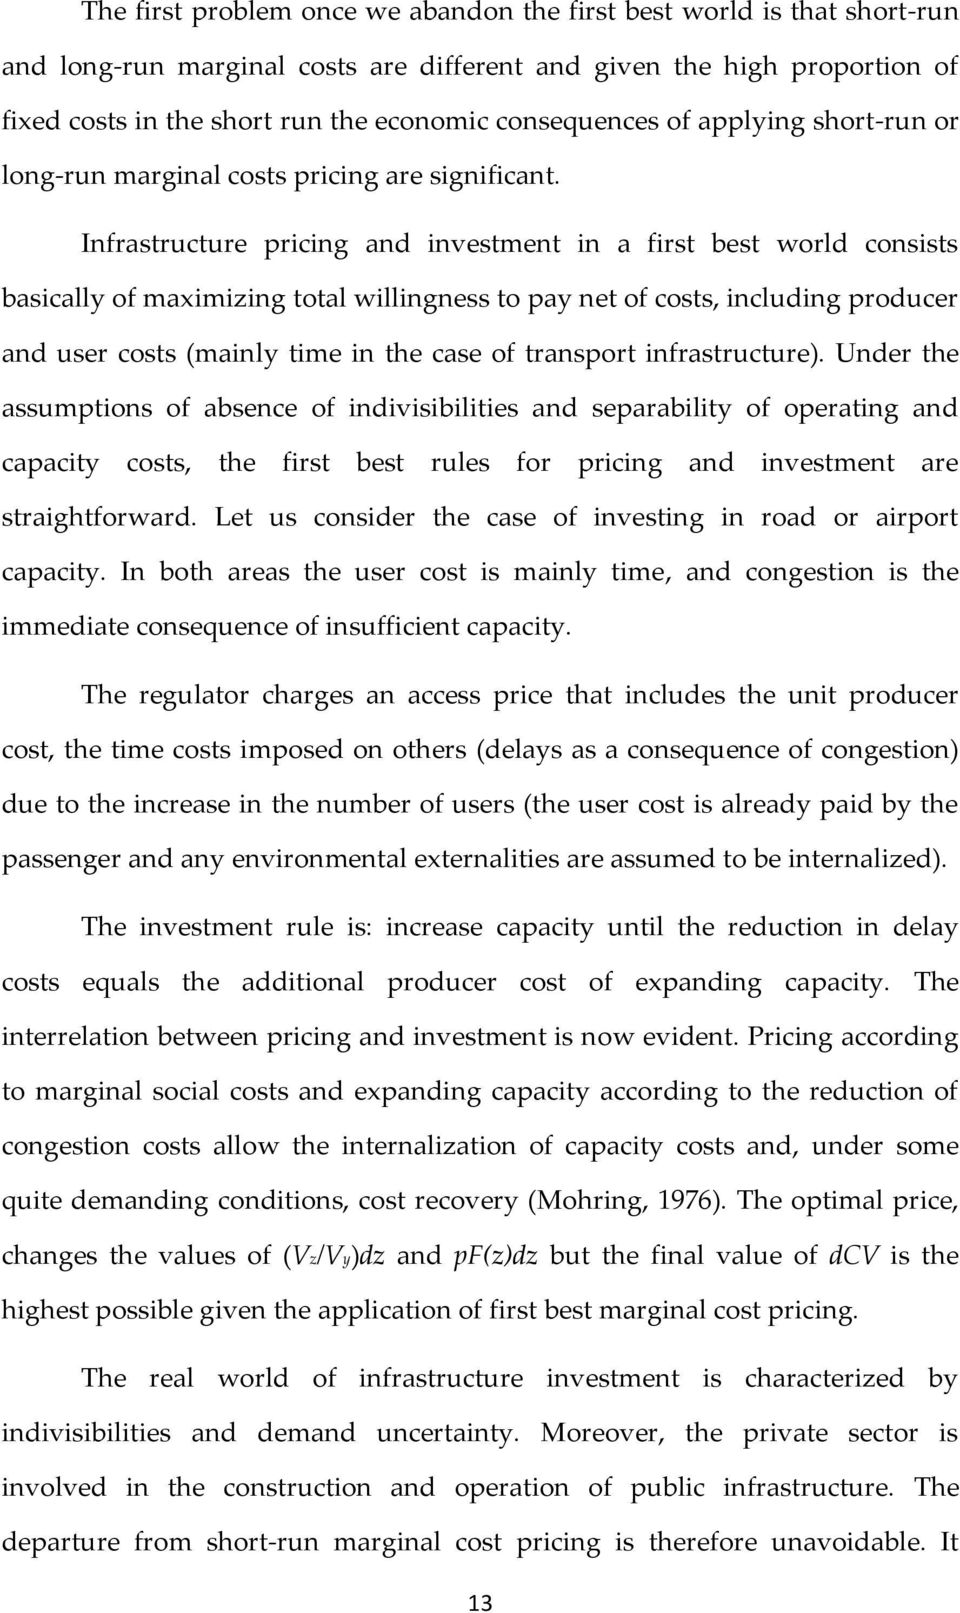 Infrastructure pricing and investment in a first best world consists basically of maximizing total willingness to pay net of costs, including producer and user costs (mainly time in the case of